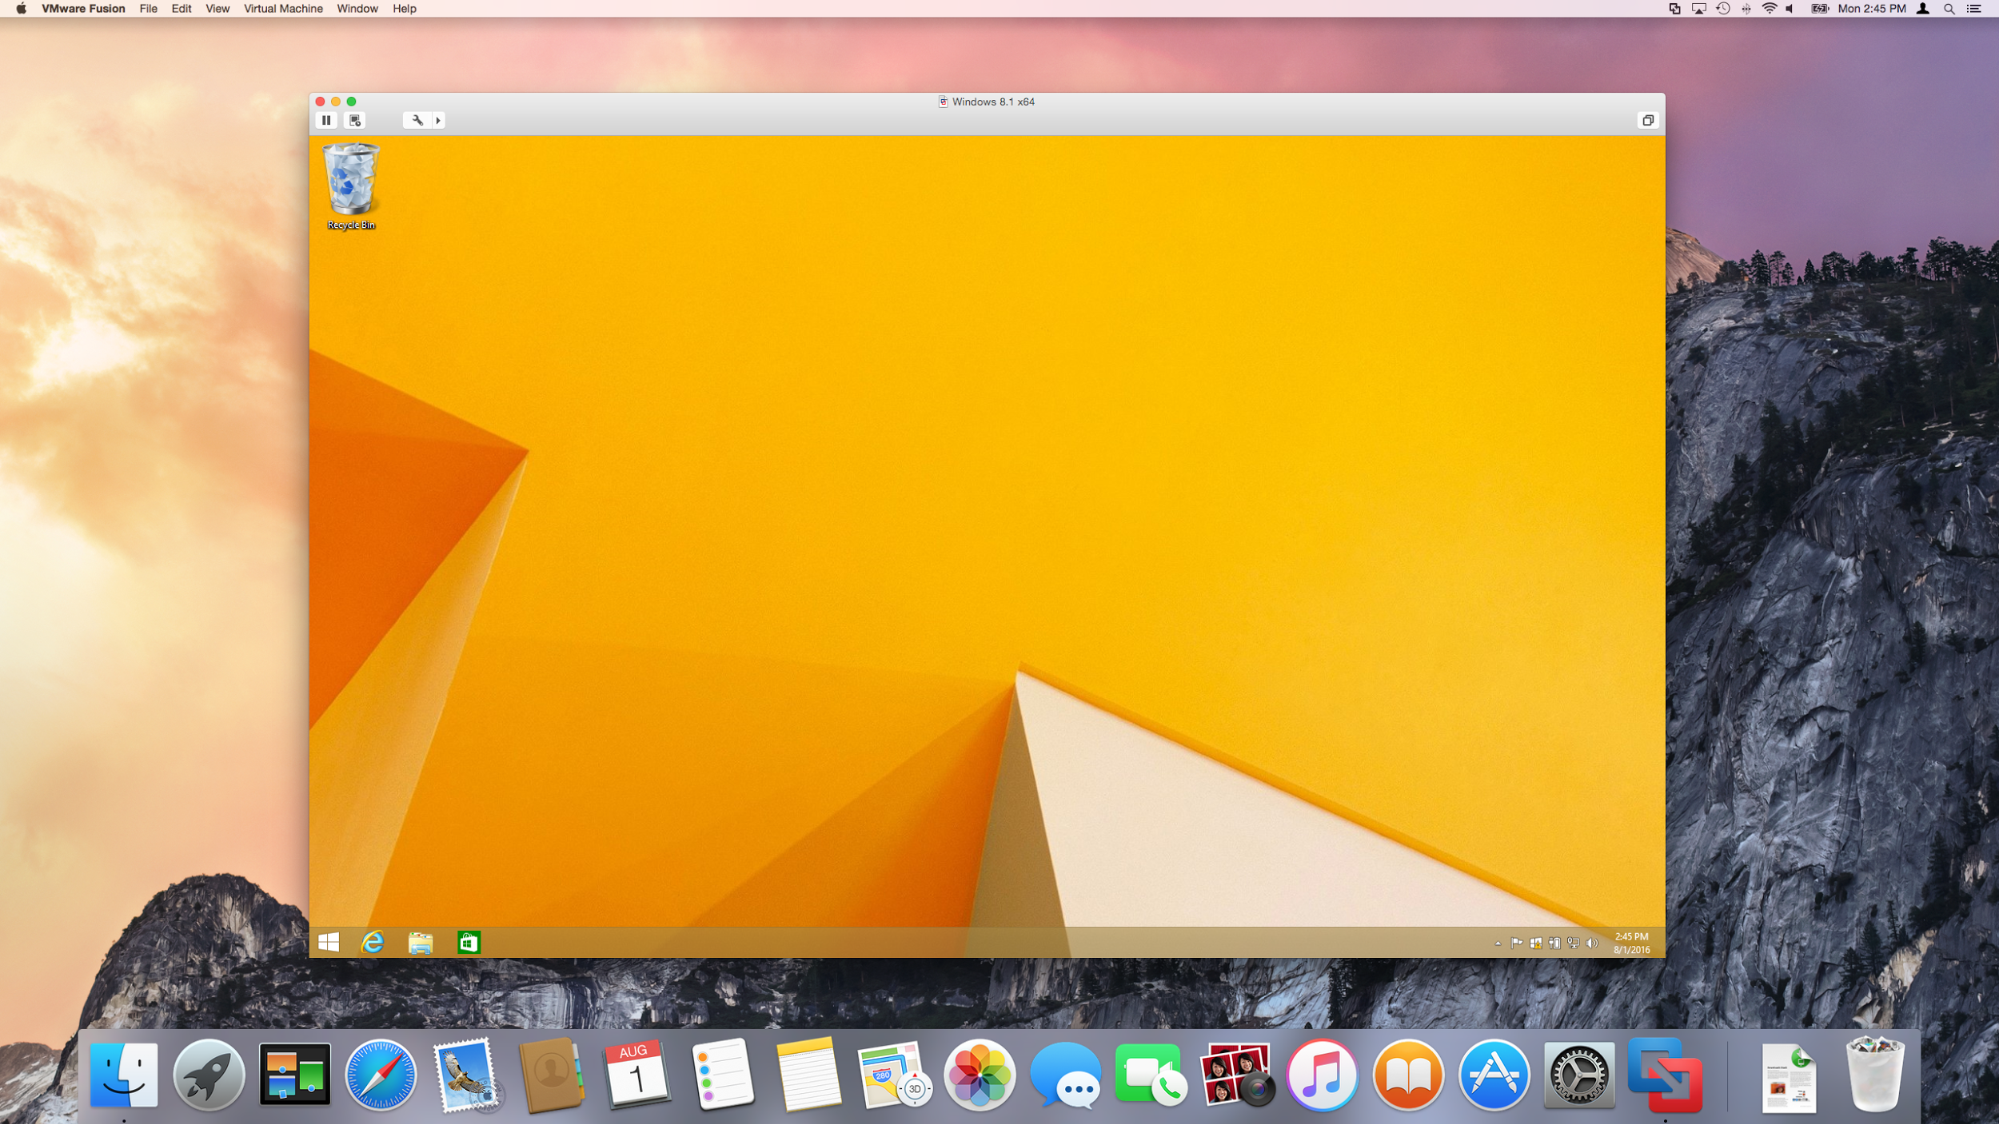 VMware Fusion: Top 3 mistakes your users are making